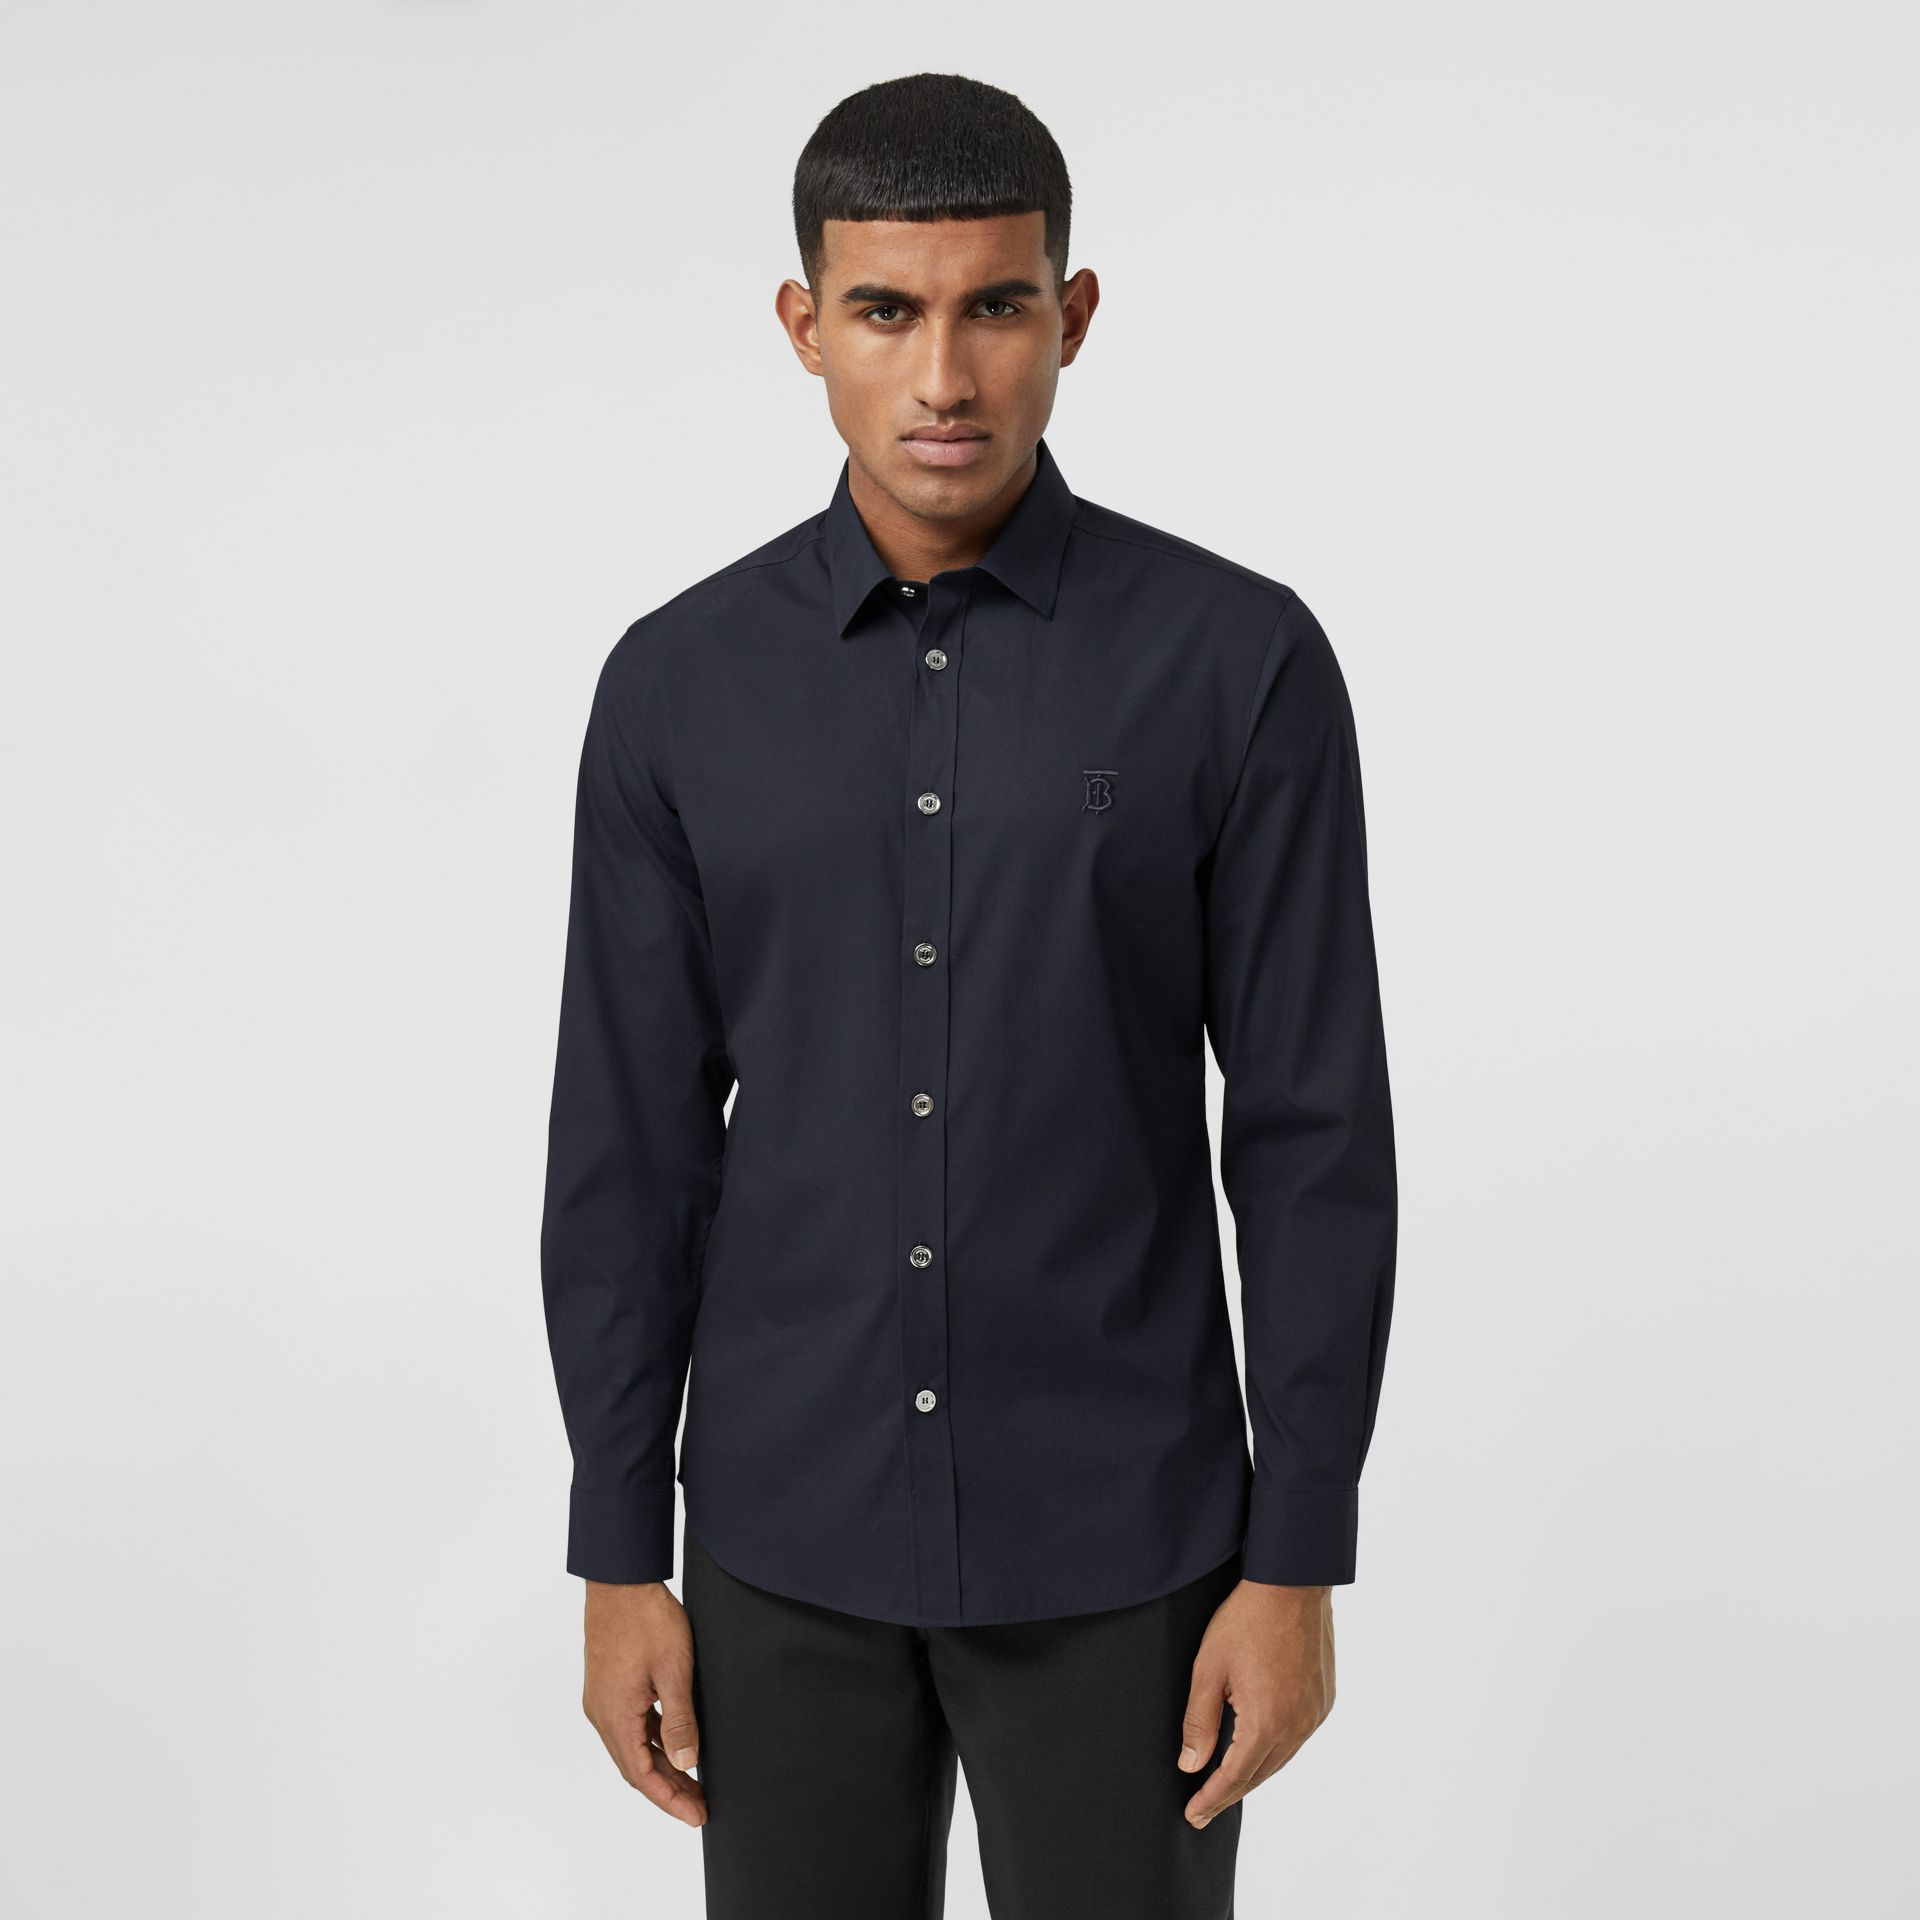 Monogram Motif Stretch Cotton Poplin Shirt in Navy - Men | Burberry Australia - gallery image 0